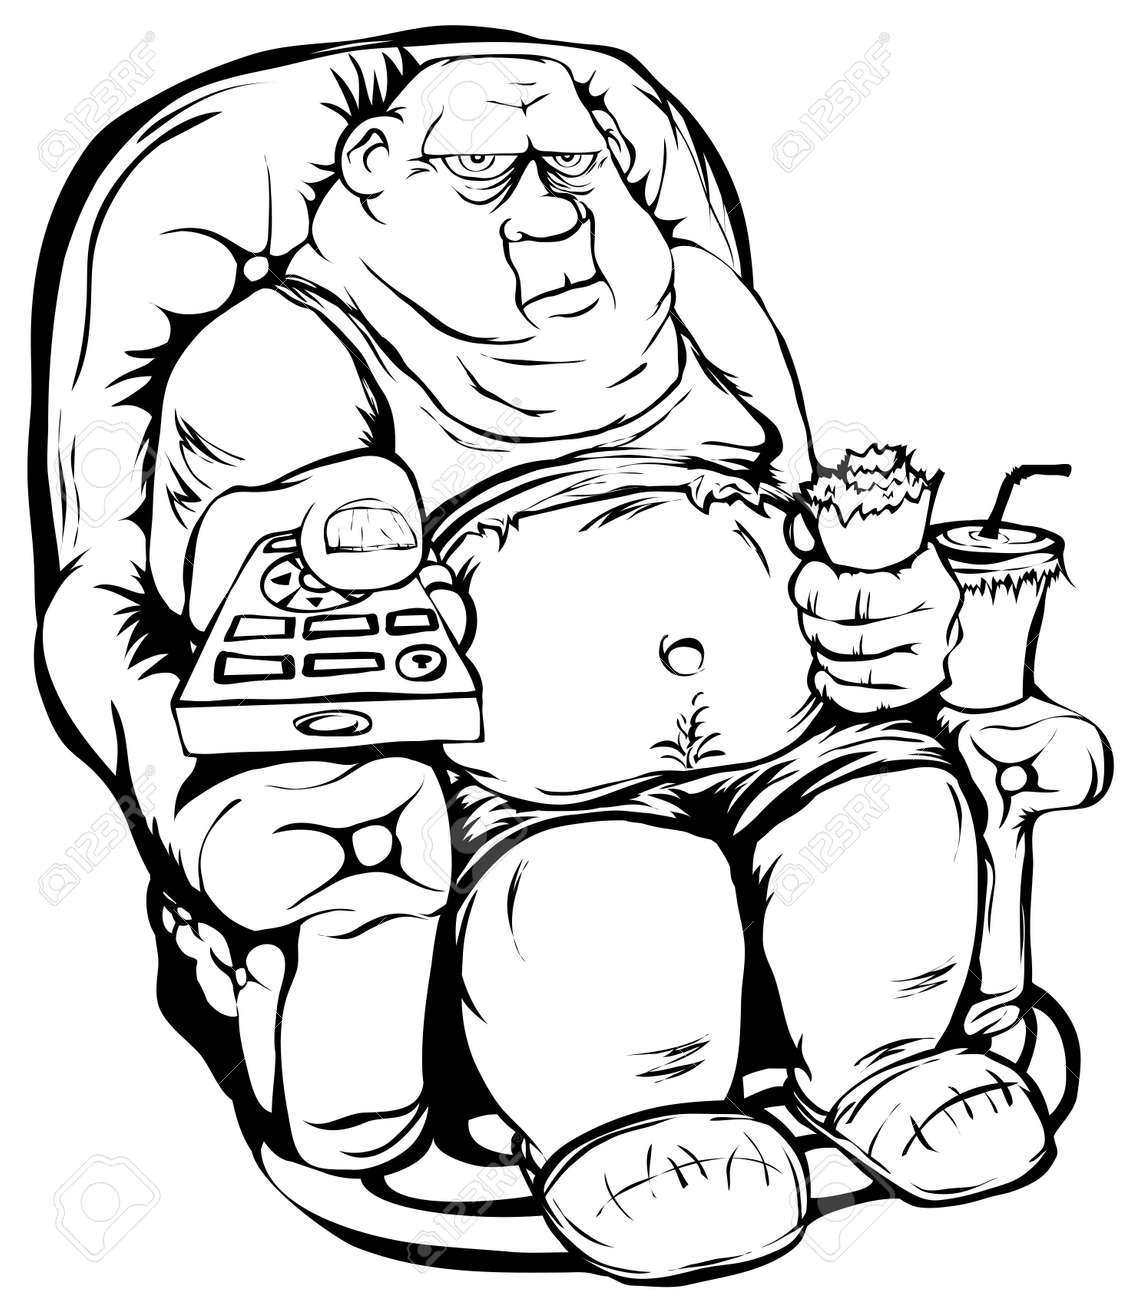 Man sitting in chair drawing - Big Chair The Fat Guy Is Sitting In A Chair With Remote Control In Hand